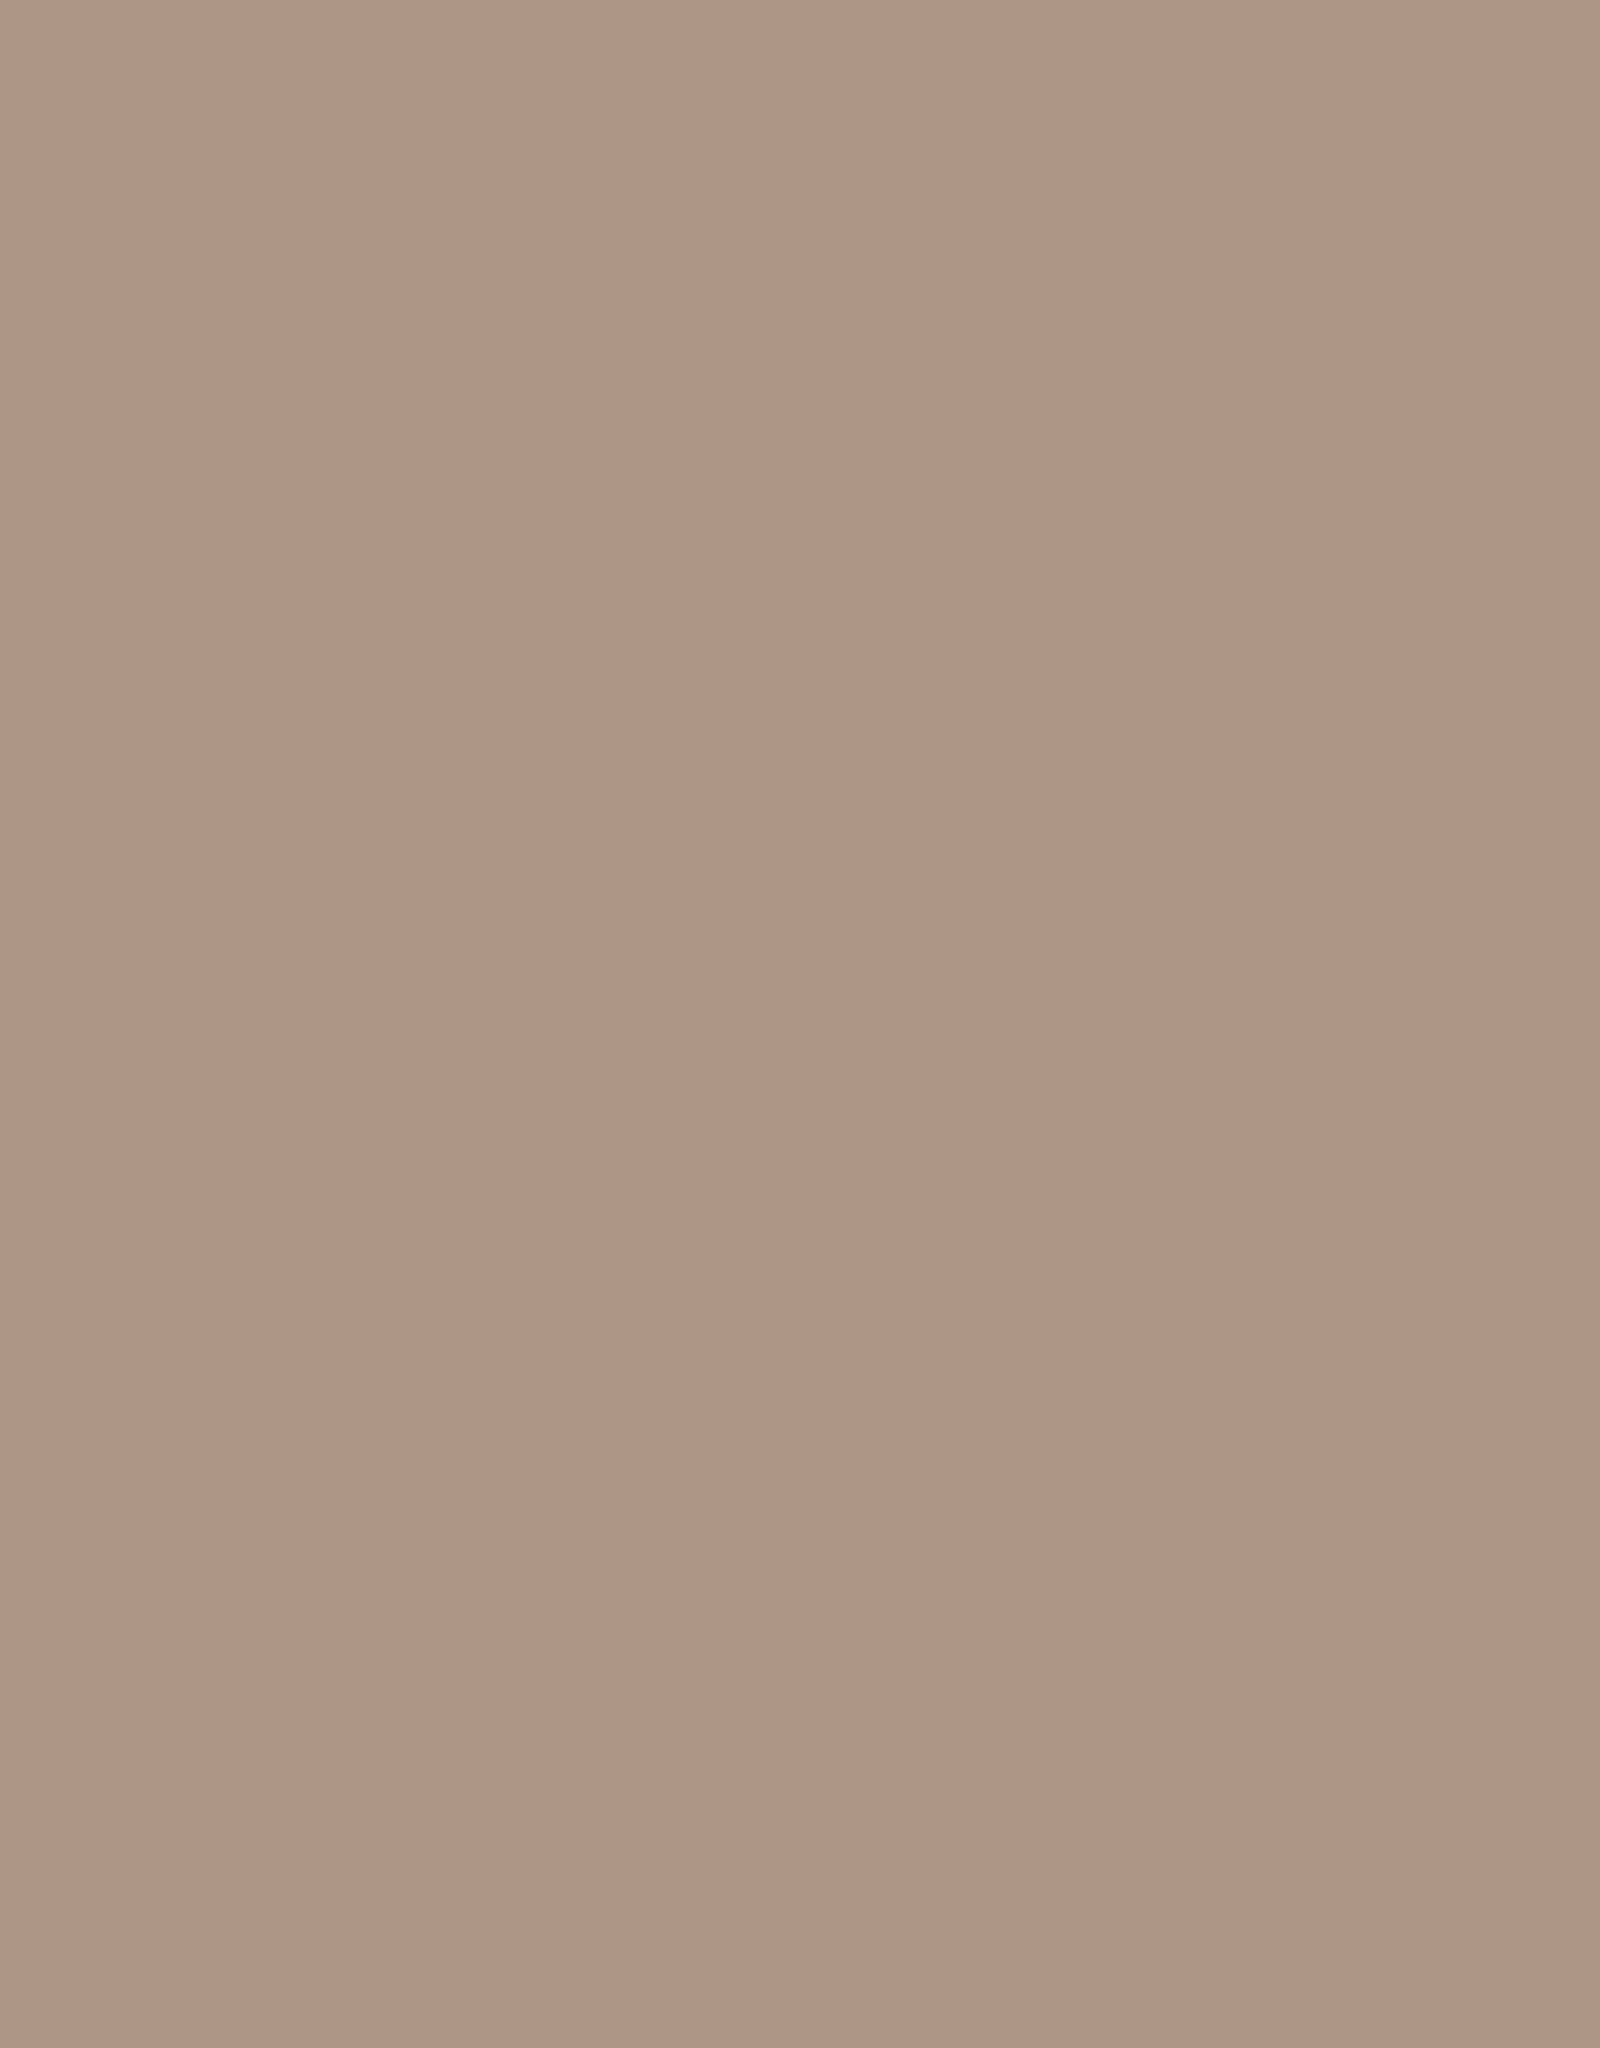 Sennelier, Extra Fine Soft Pastel, Reddish Brown Gray